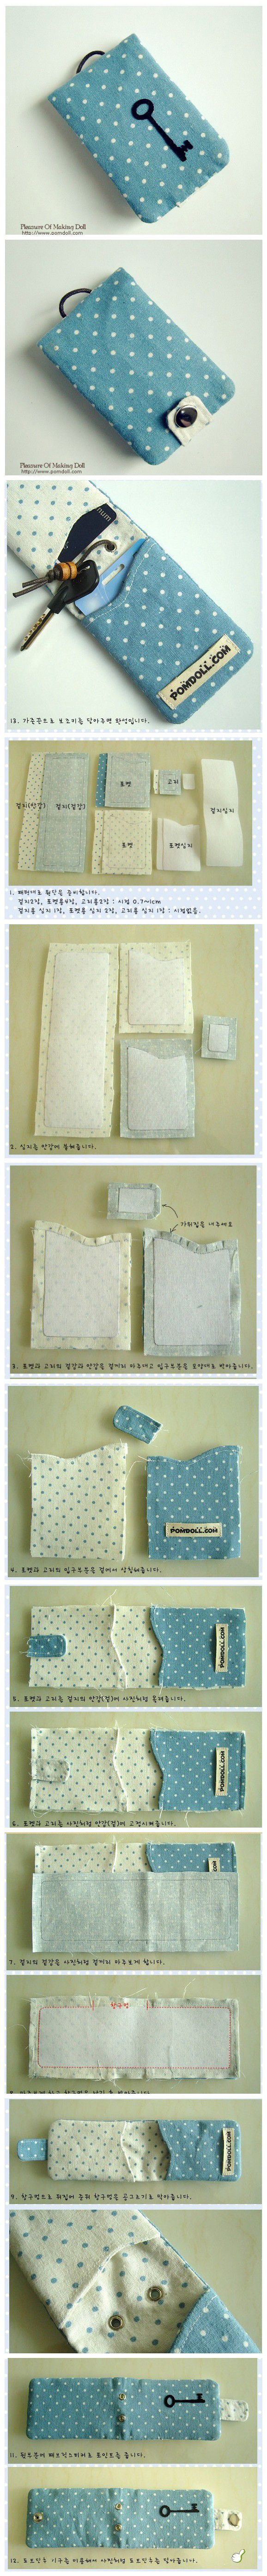 I can't read the instructions but it looks like an easy enough project.  Worth a try!